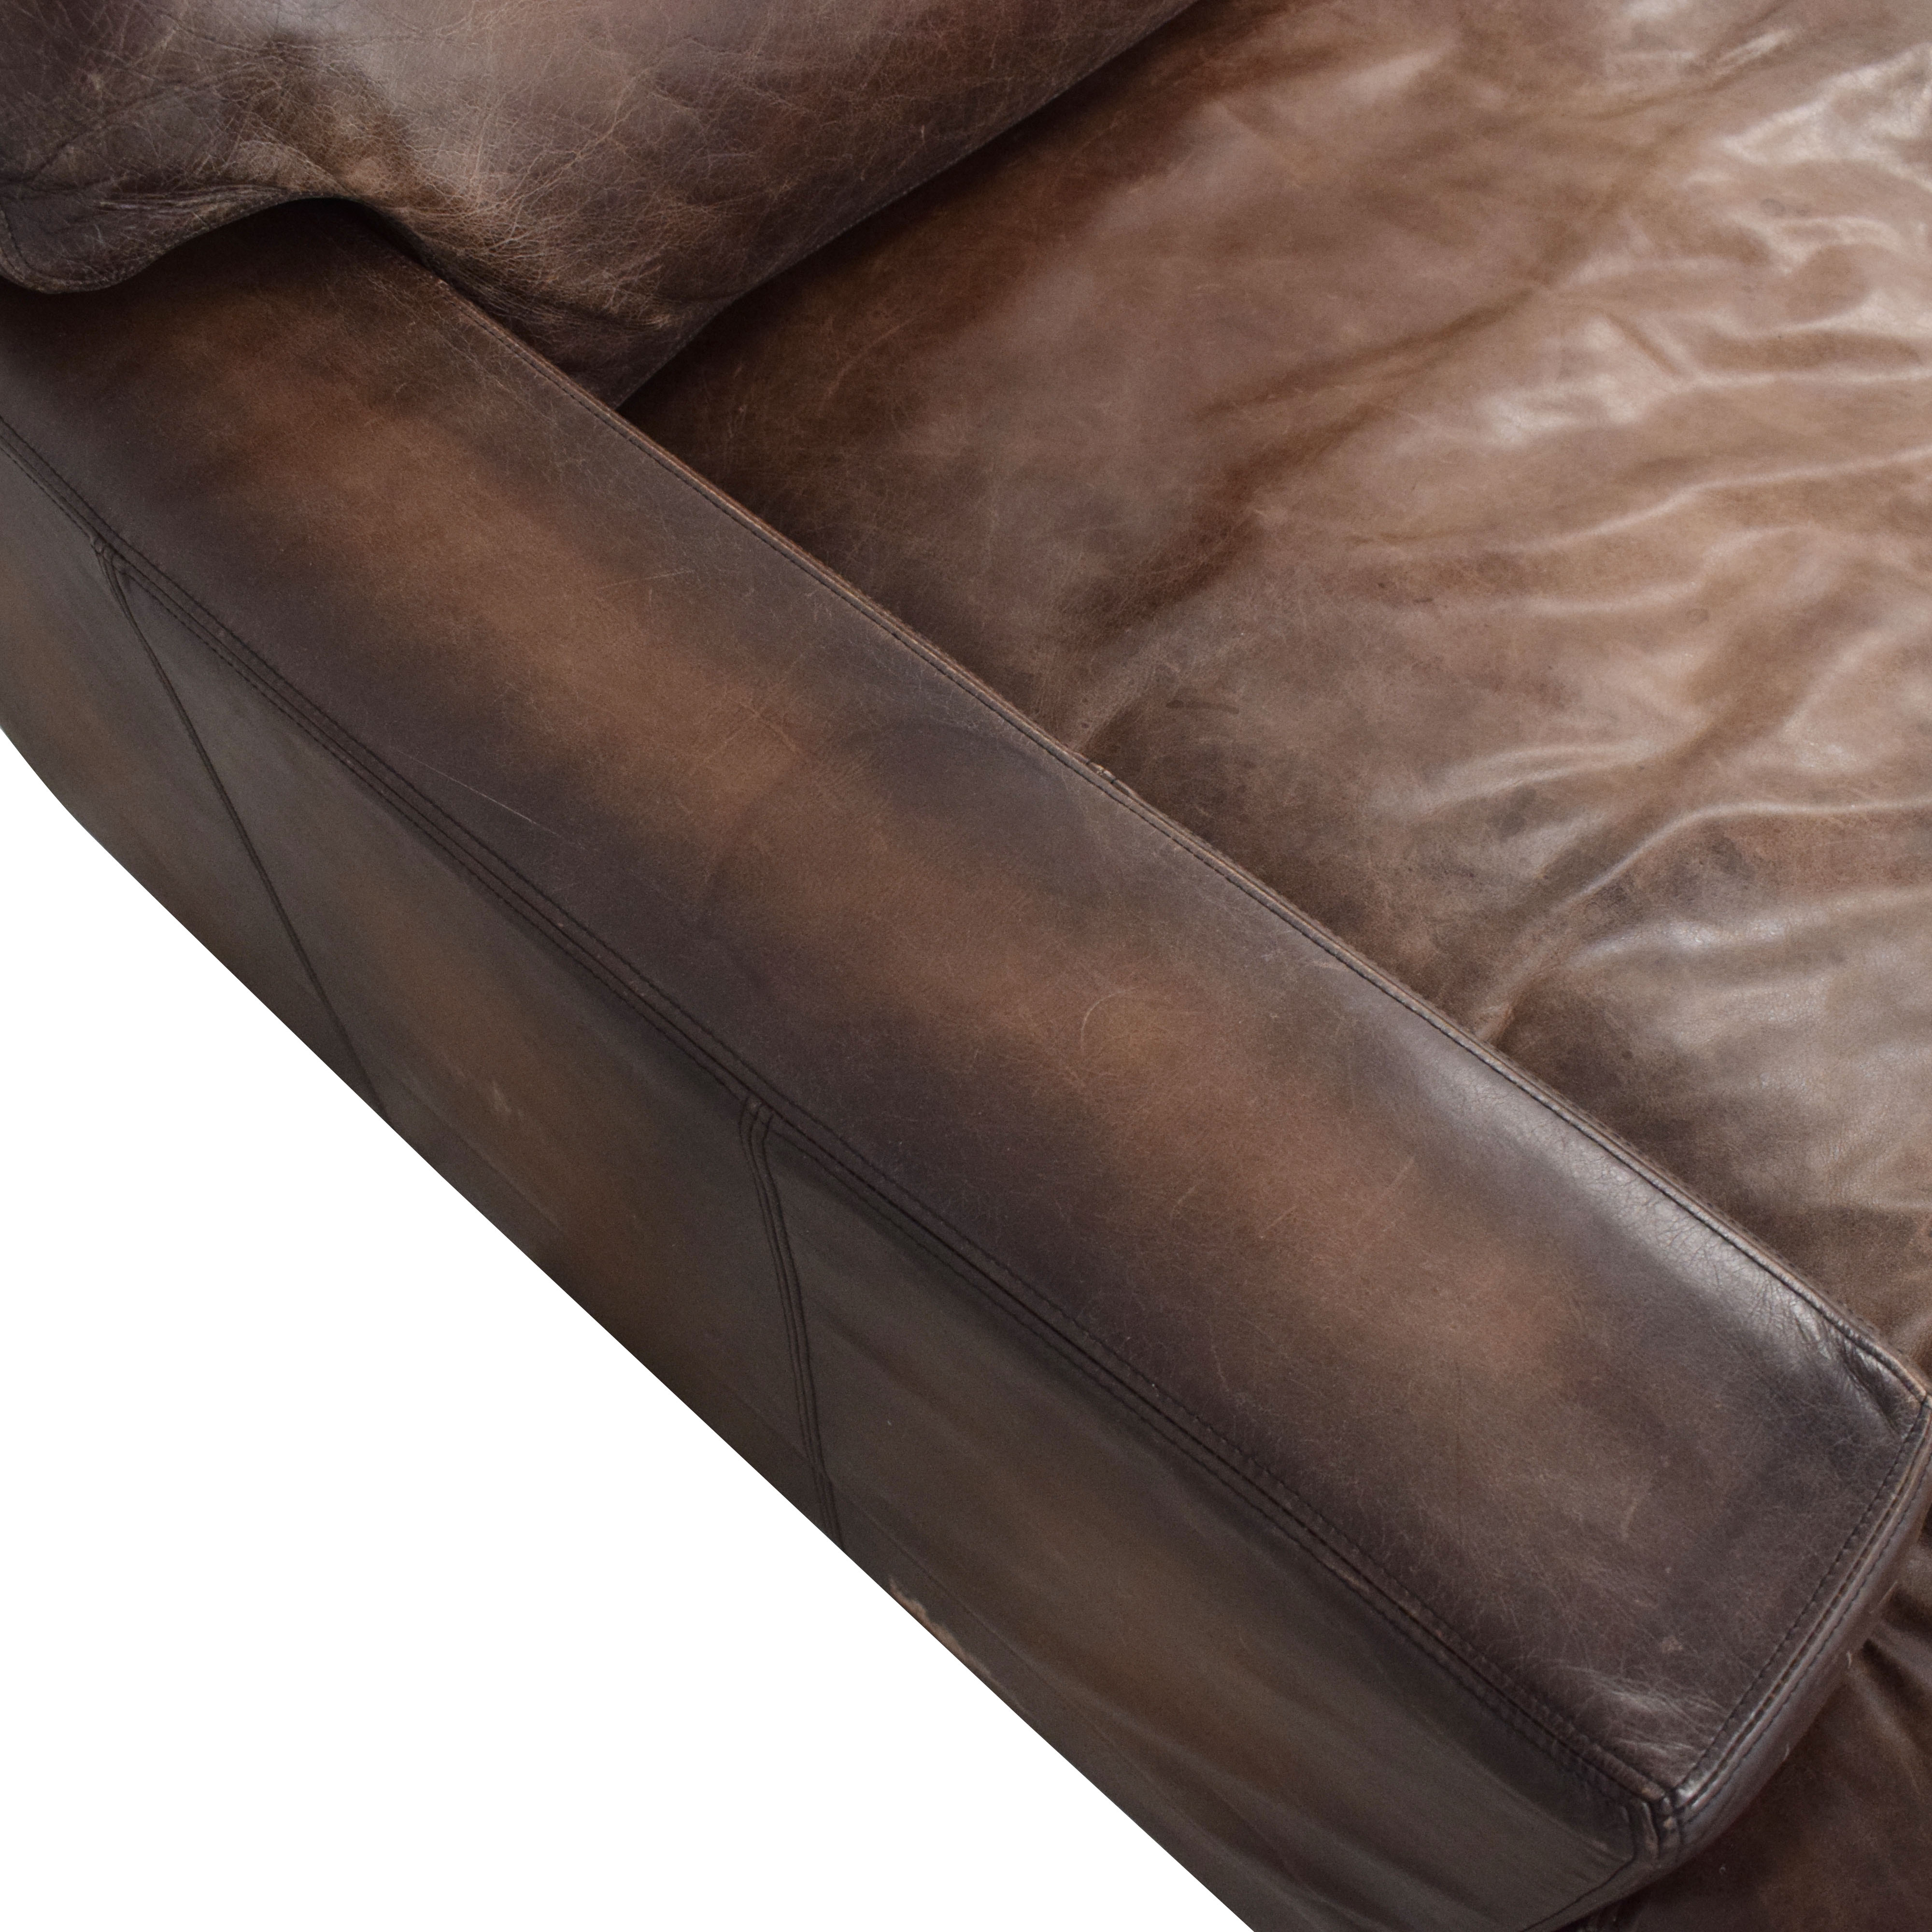 buy Pottery Barn Turner Chaise Lounge Pottery Barn